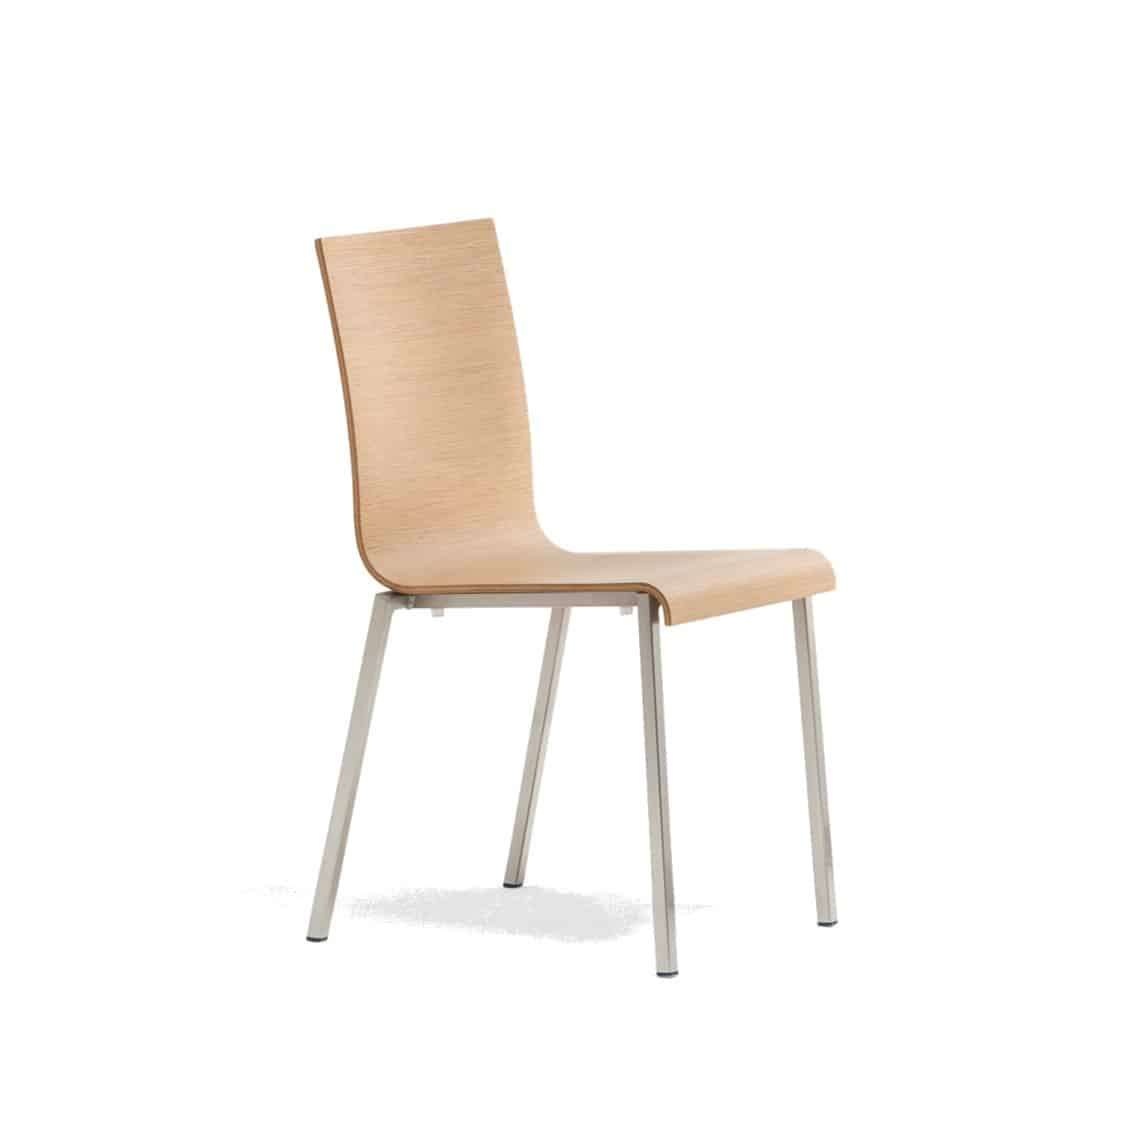 Kuadra Wood Side Chair 1321 Pedrali at DeFrae Contract Furniture Natural Side